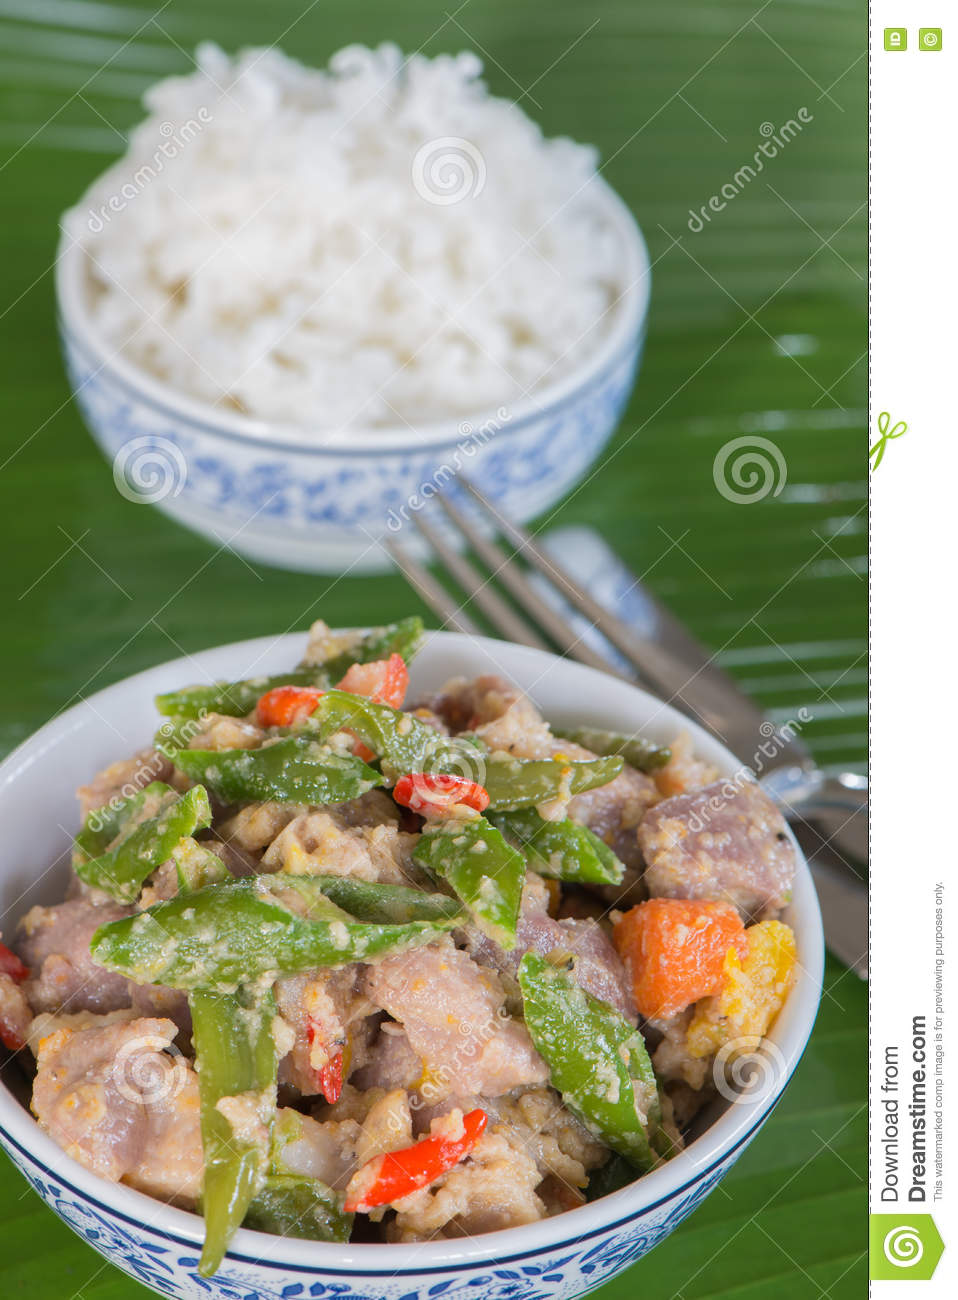 bicol express with rice stock photo - image: 75895272